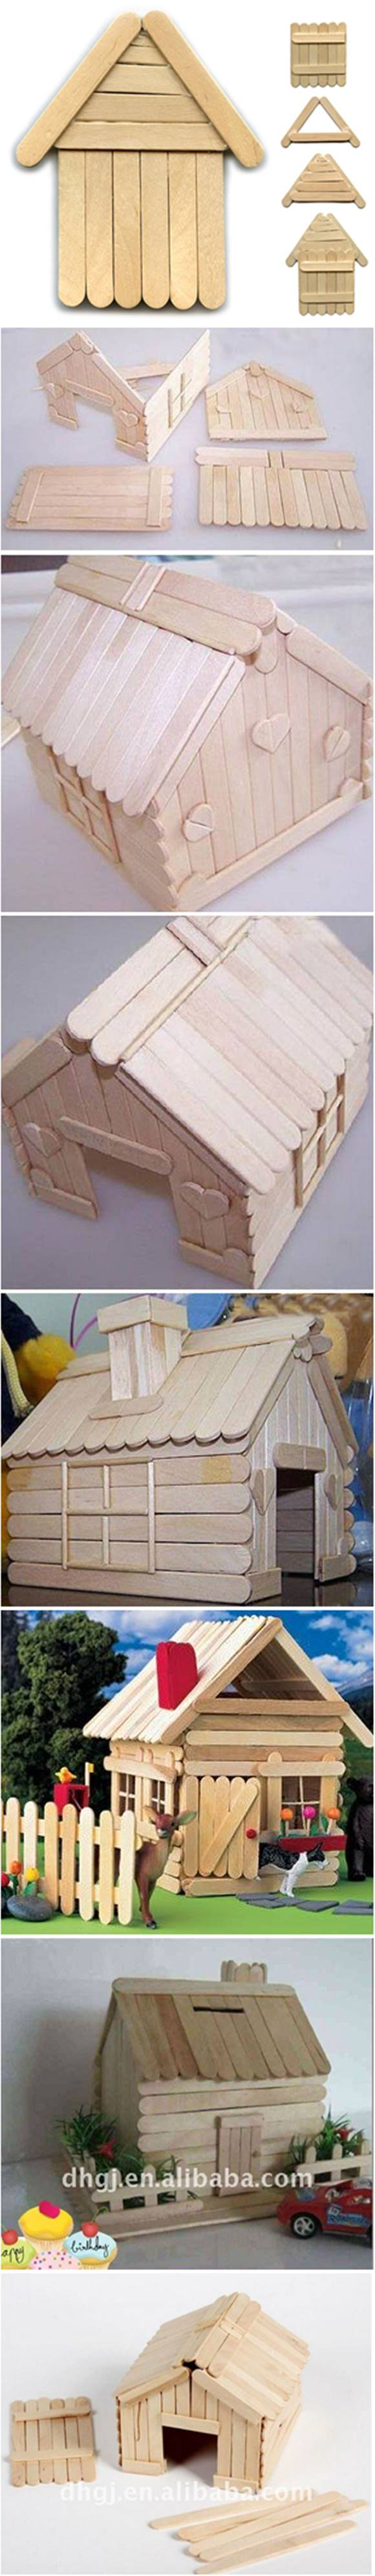 How to diy popsicle stick house for Popsicle stick creations ideas